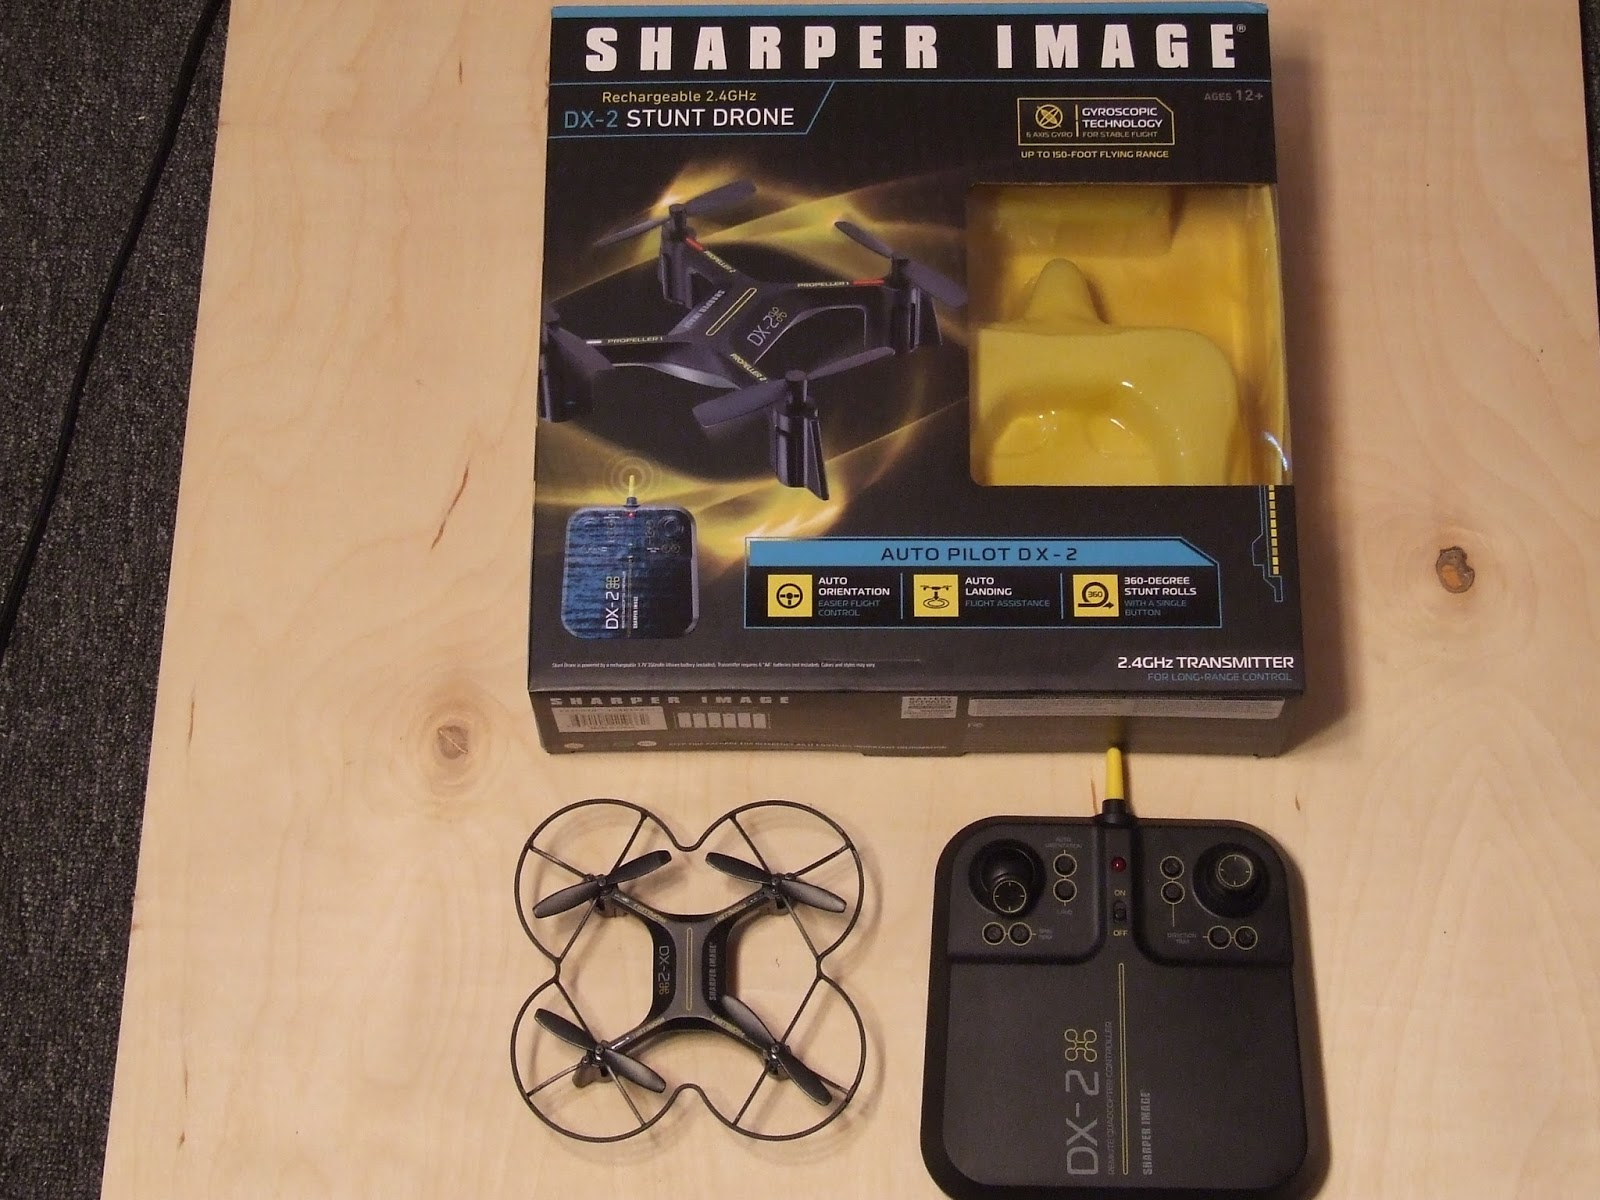 Harolds Micro Quadcopters Sharper Image Dx 2 Stunt Drone